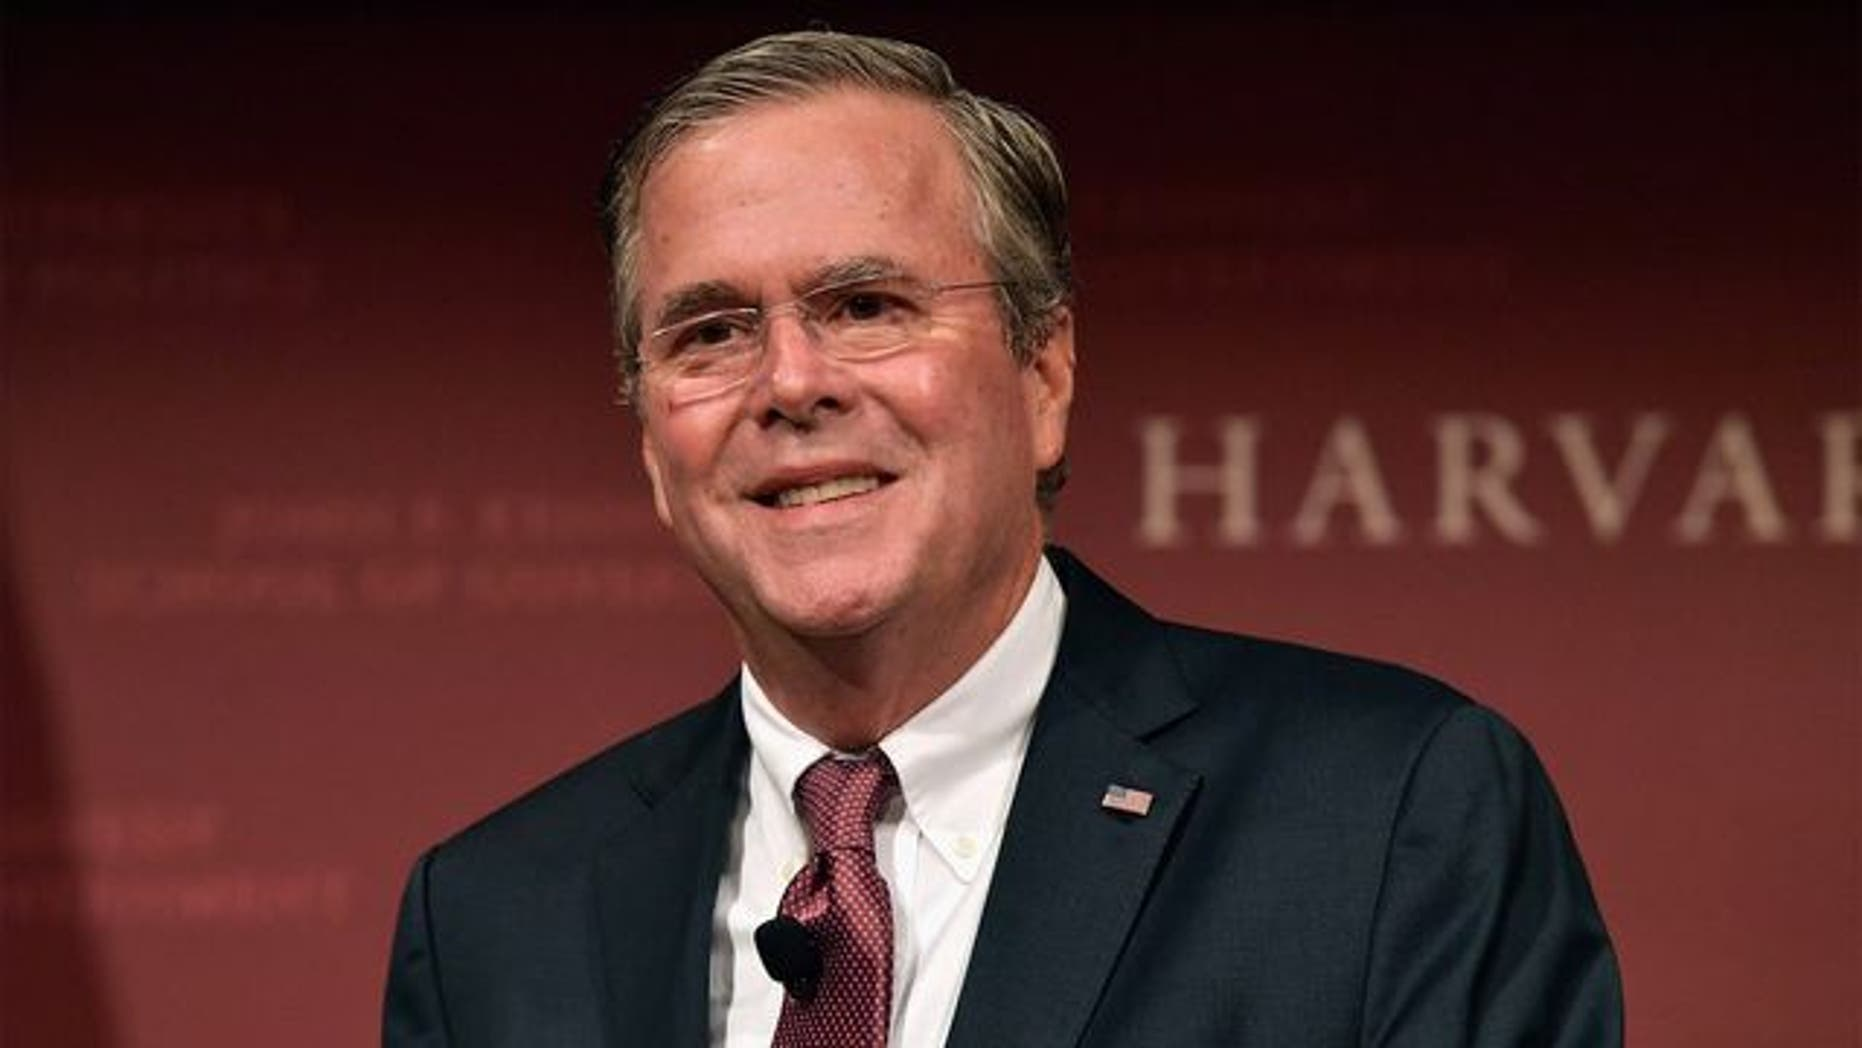 Former 2016 presidential candidate Jeb Bush is seen above. (Getty Images)